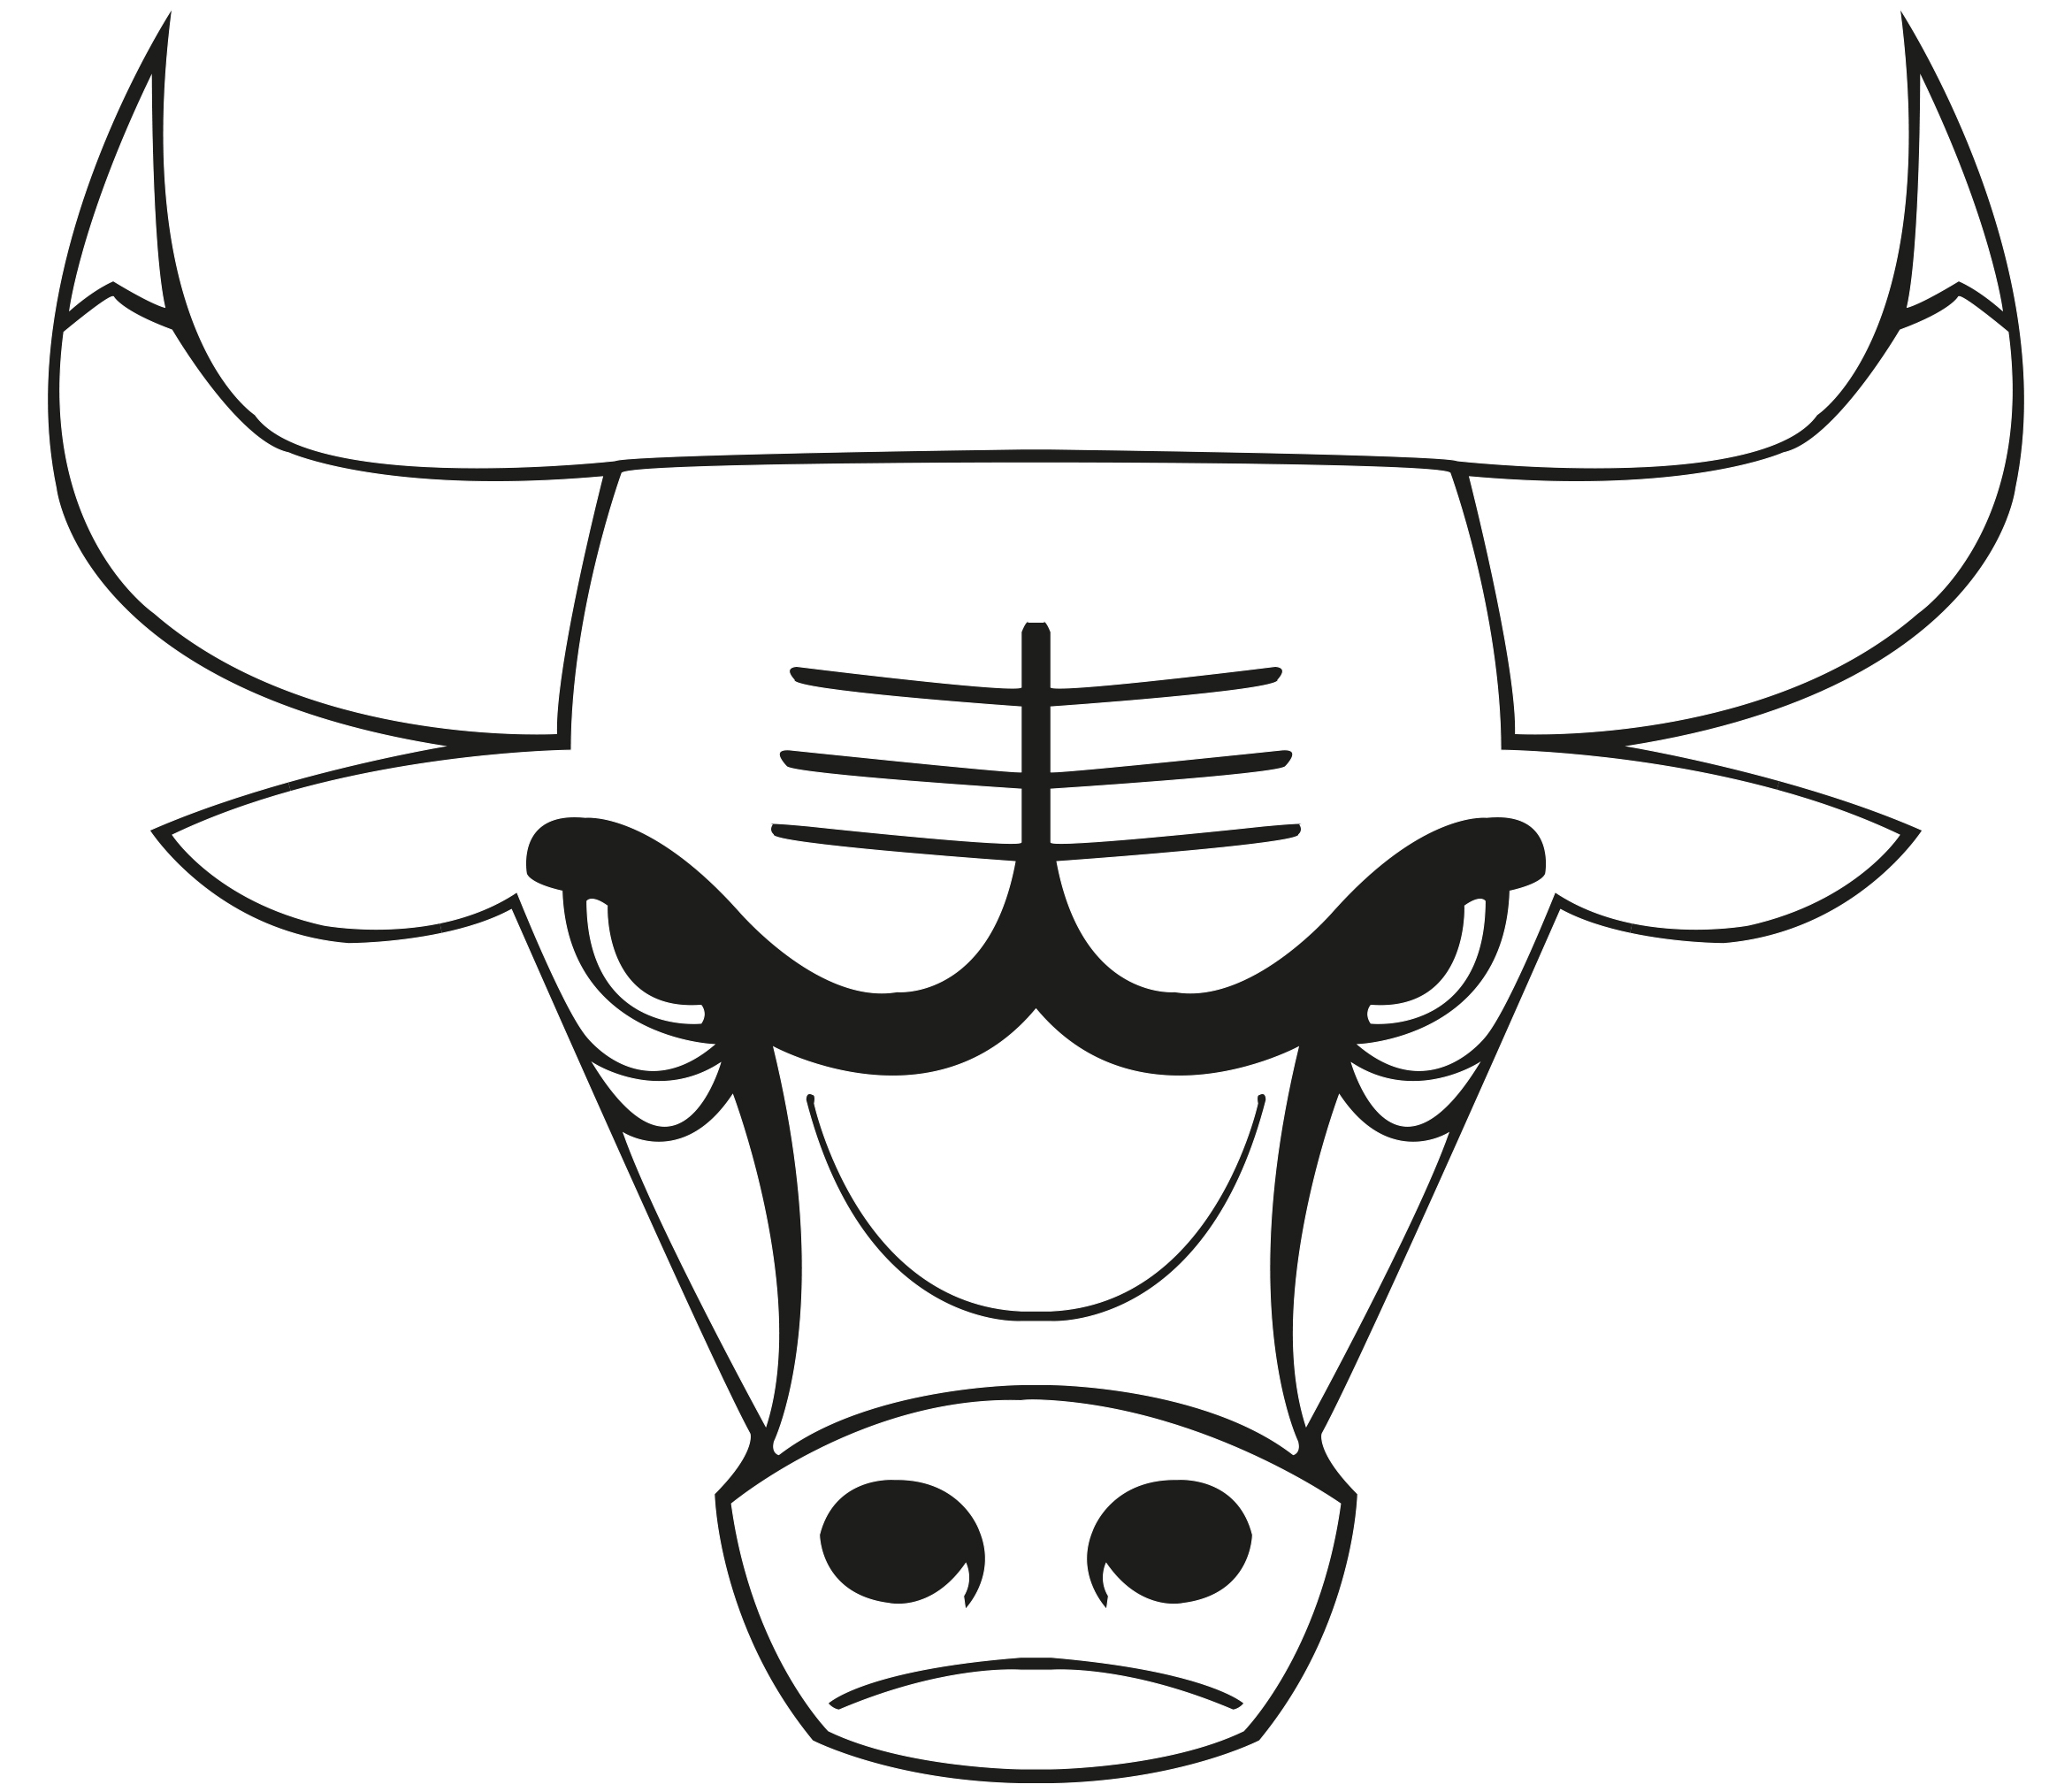 2343x2026 Awesome Bulls Coloring Pages Design Printable Coloring Sheet